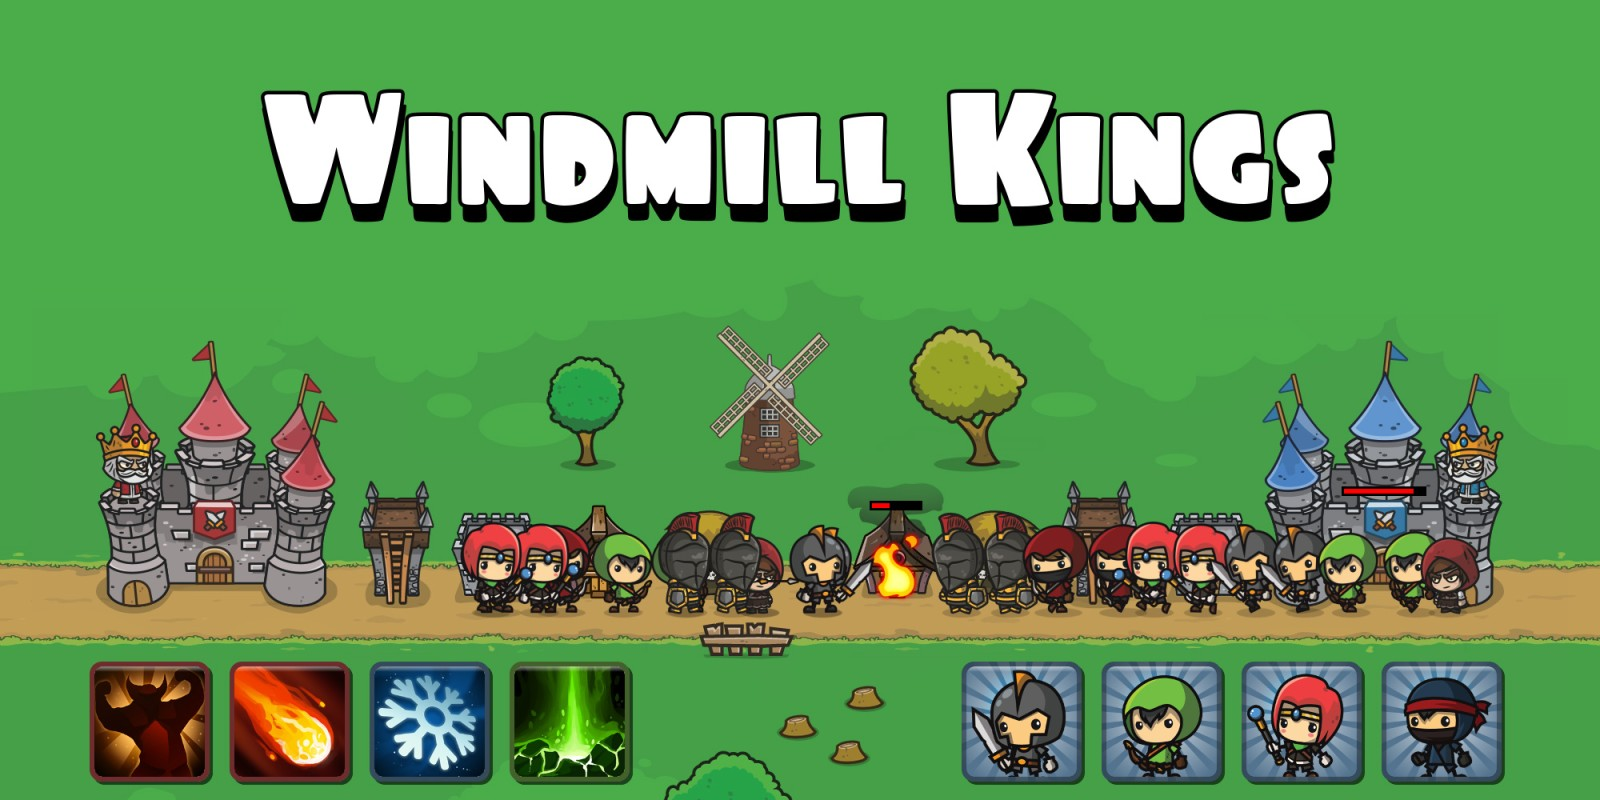 Windmill Kings